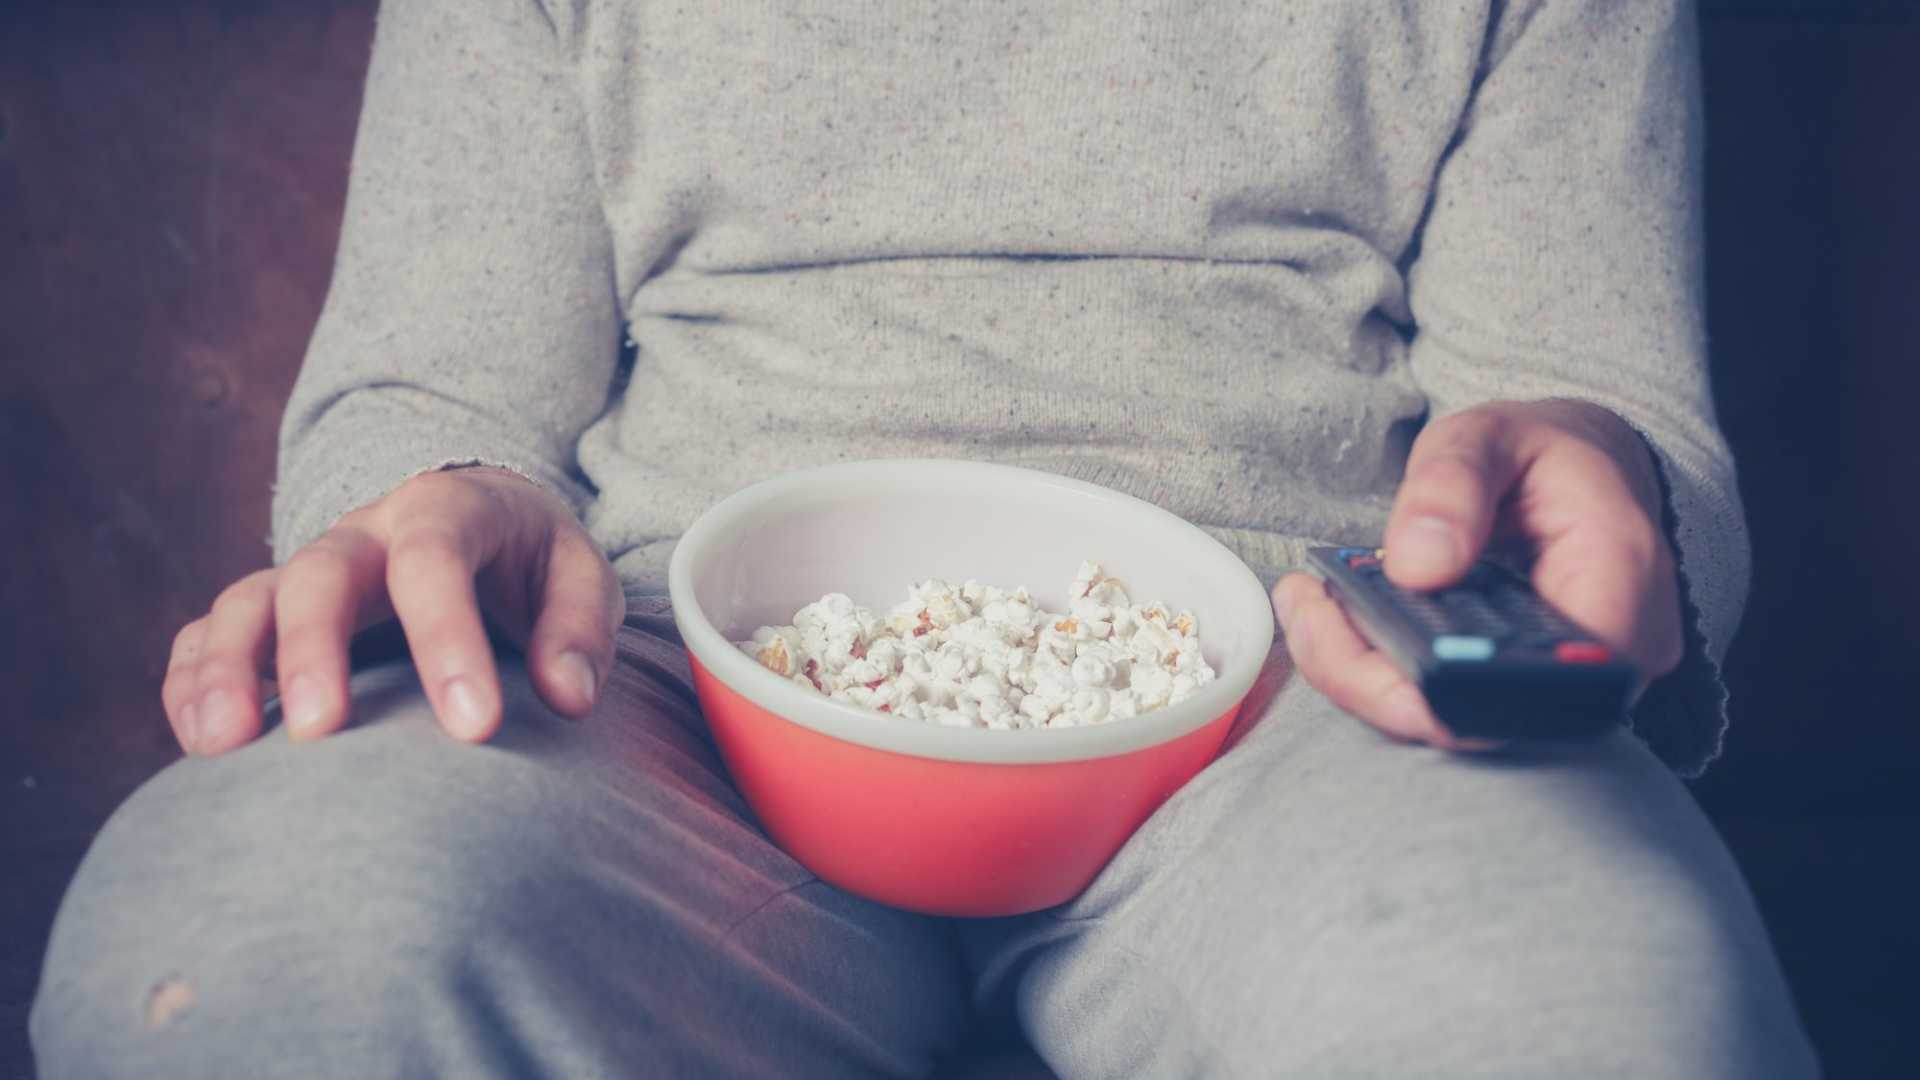 A New Study of 9,000 People Shows Being a Couch Potato Changes Your Personality